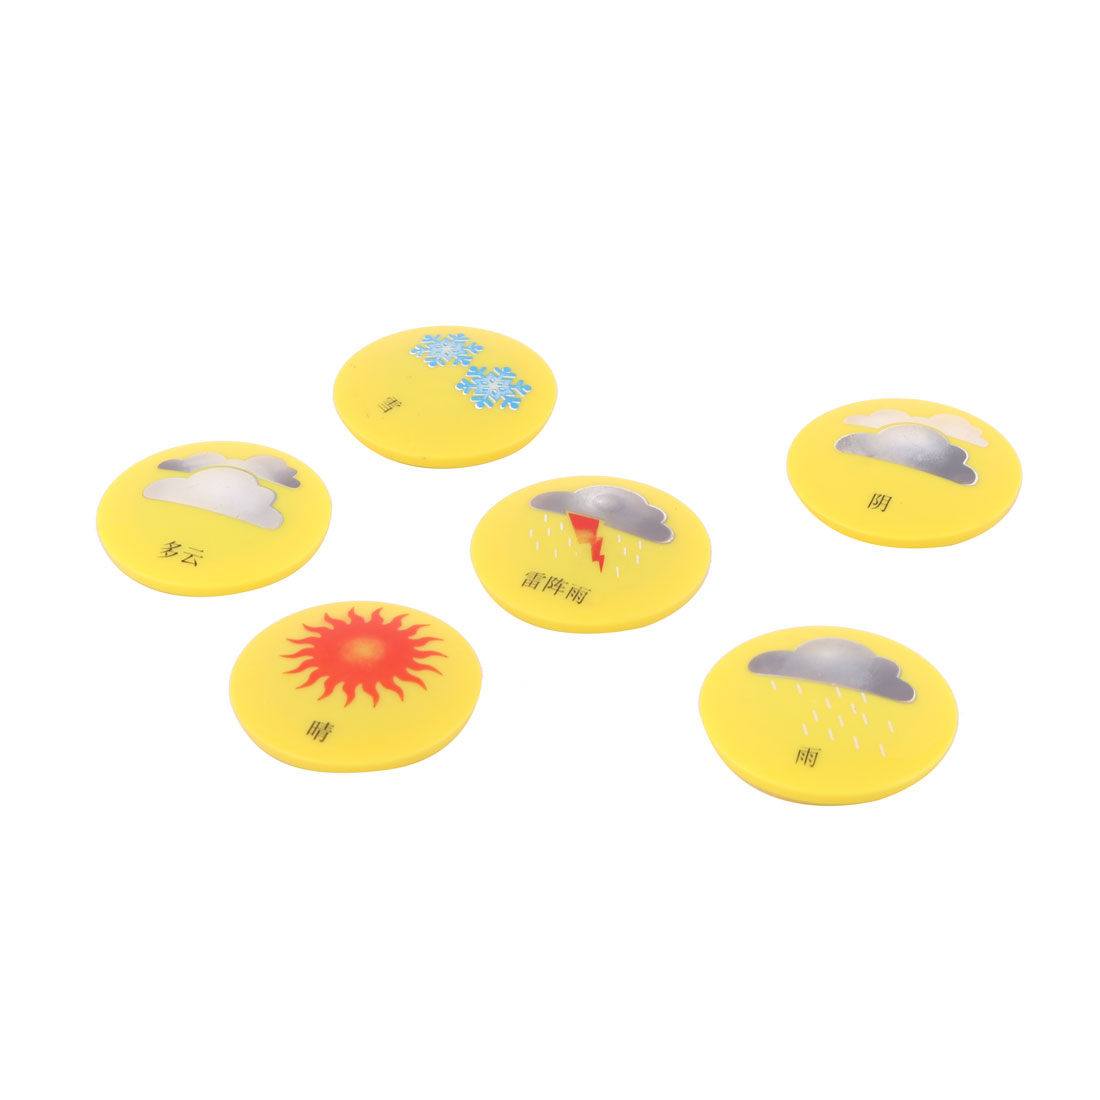 Home Office Plastic Shell Weather Report Pattern Bulletin Board Fridge Magnet Yellow 6pcs